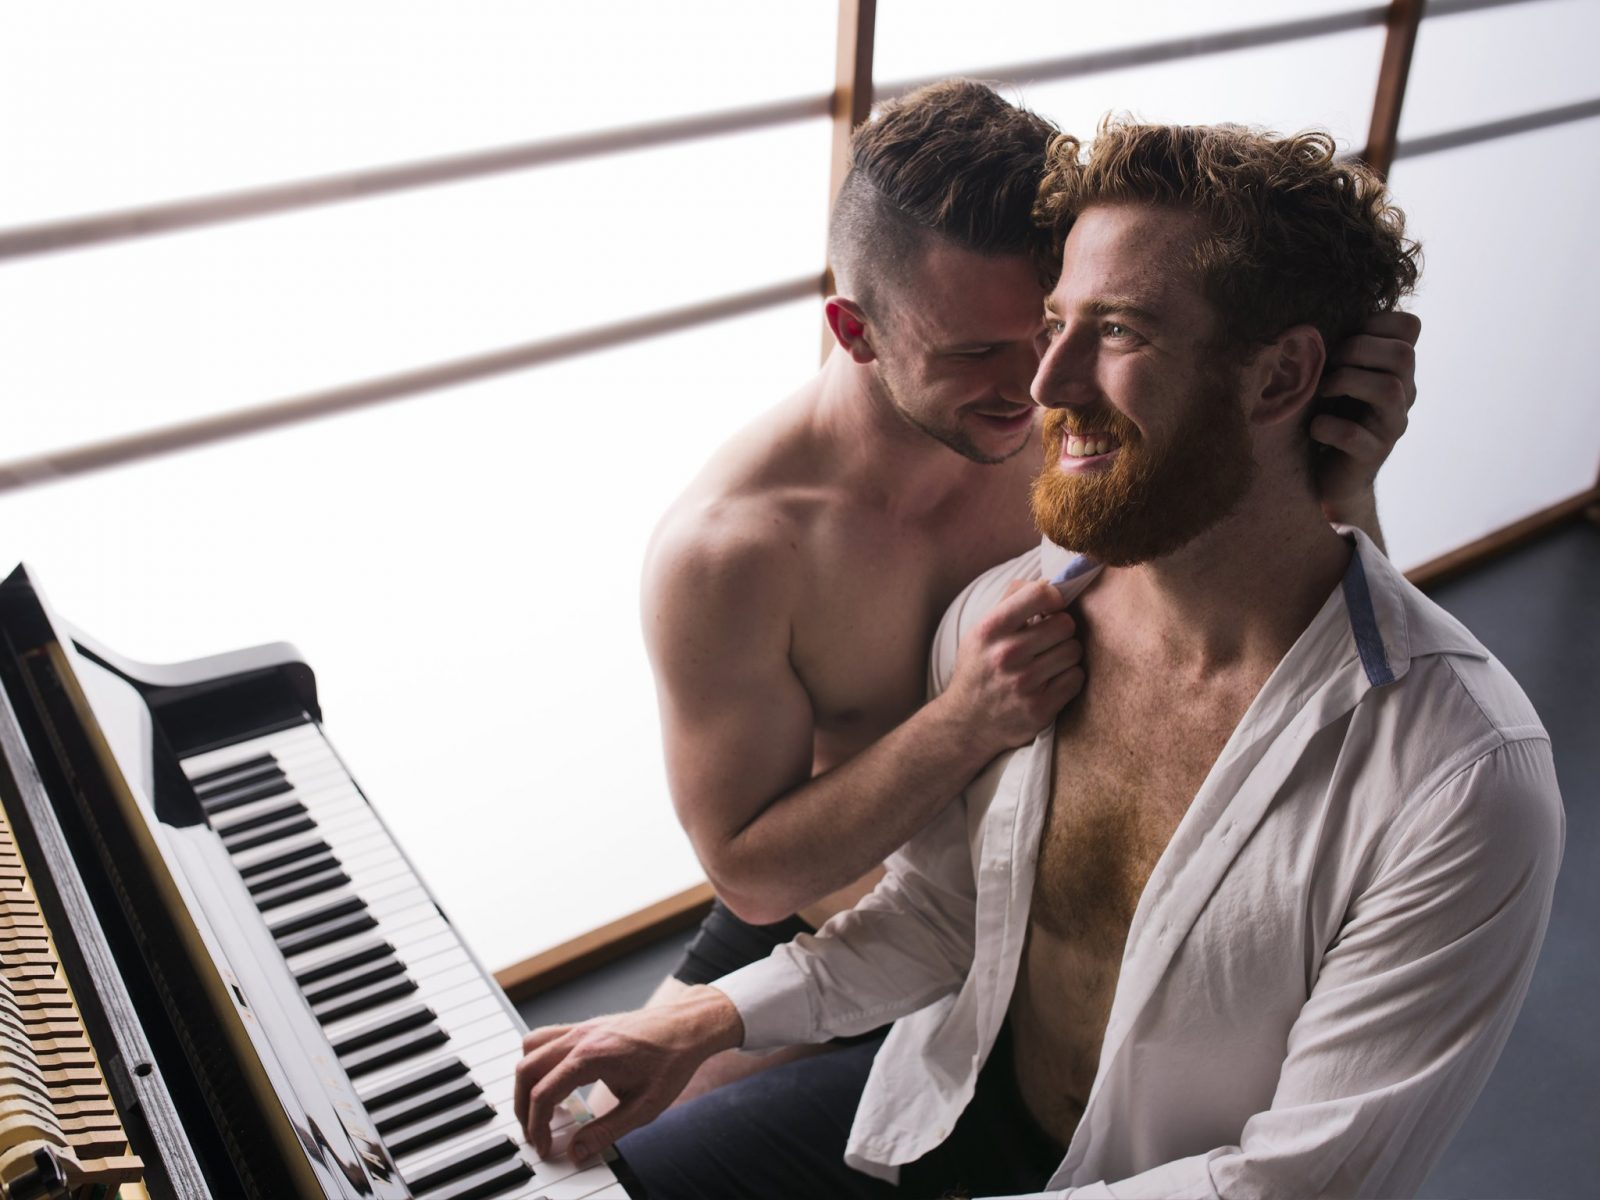 Image of two men at a piano, embracing.